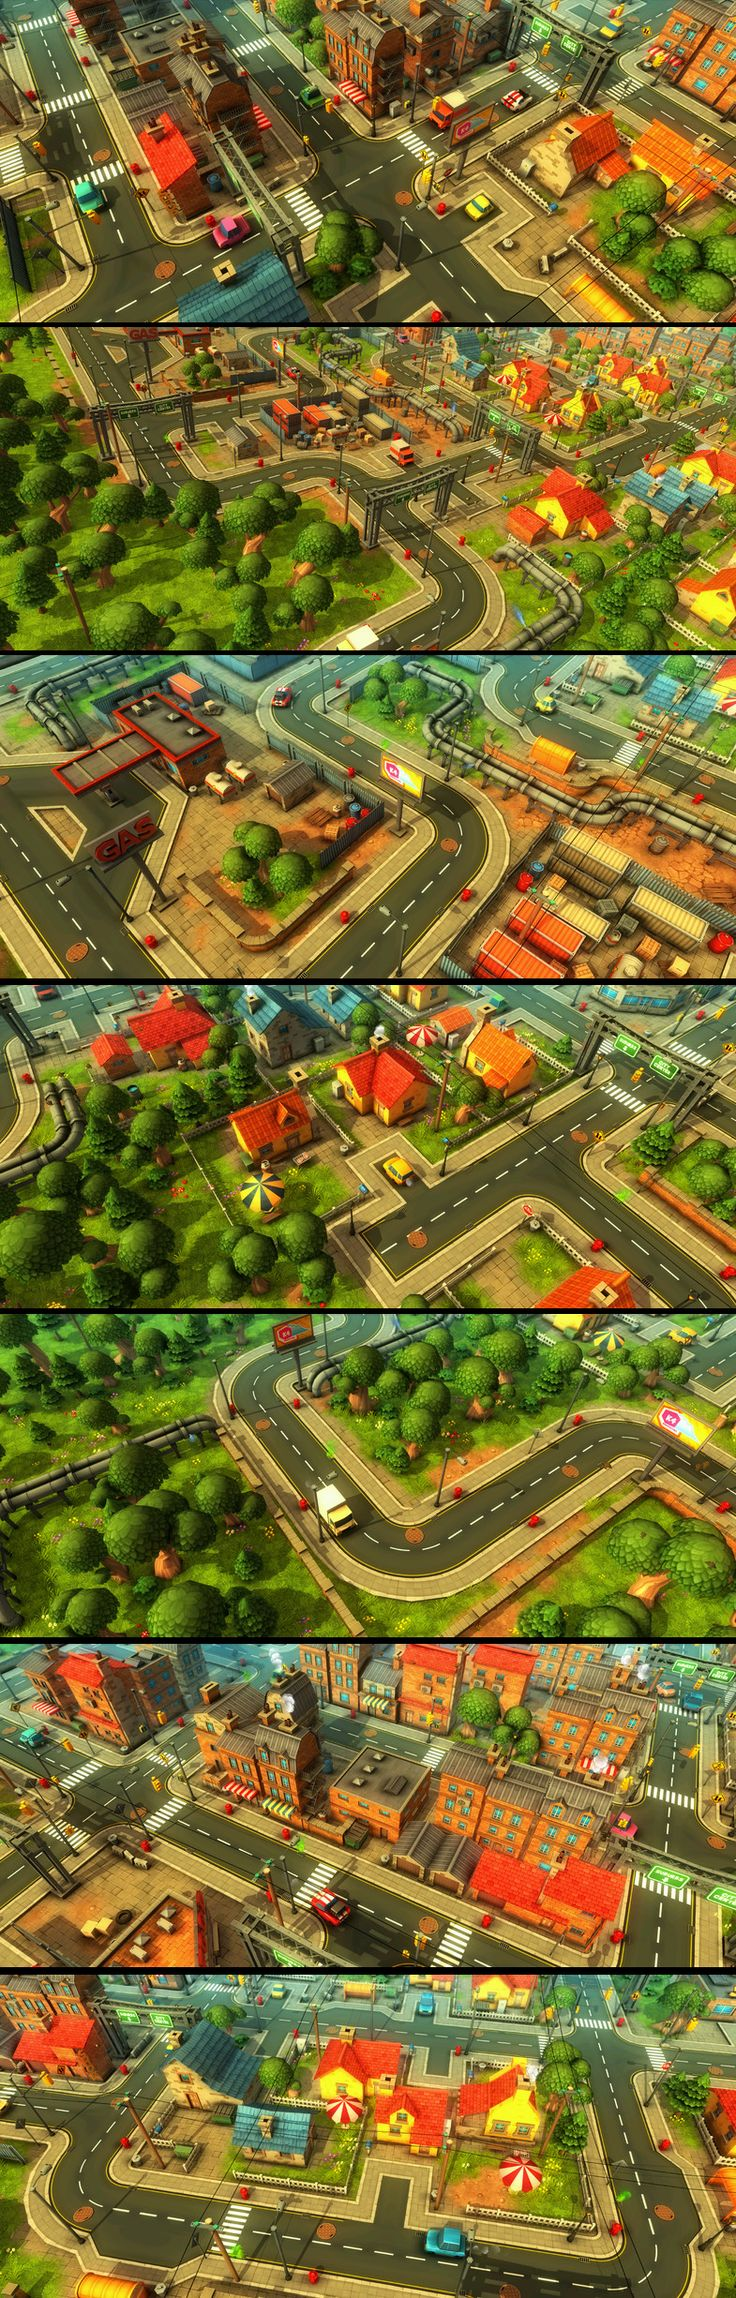 Cartoon Town and Farm - contains tons of models to create scenes such as: farm, village, city in a cartoon/comic-style